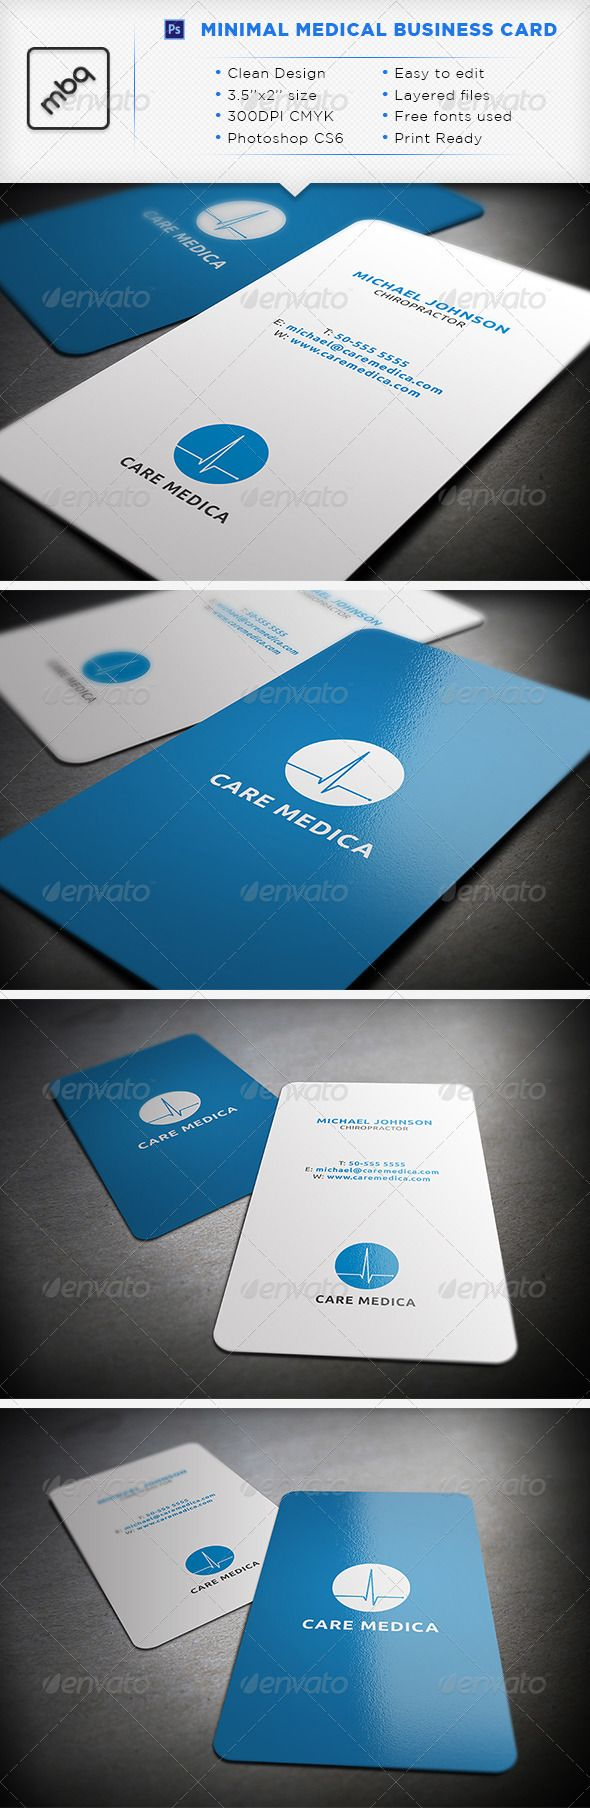 Minimal medical business card graphicriver minimal medical business minimal medical business card graphicriver minimal medical business card fully editable d files fonts used ubuntu link here the font used in the reheart Images